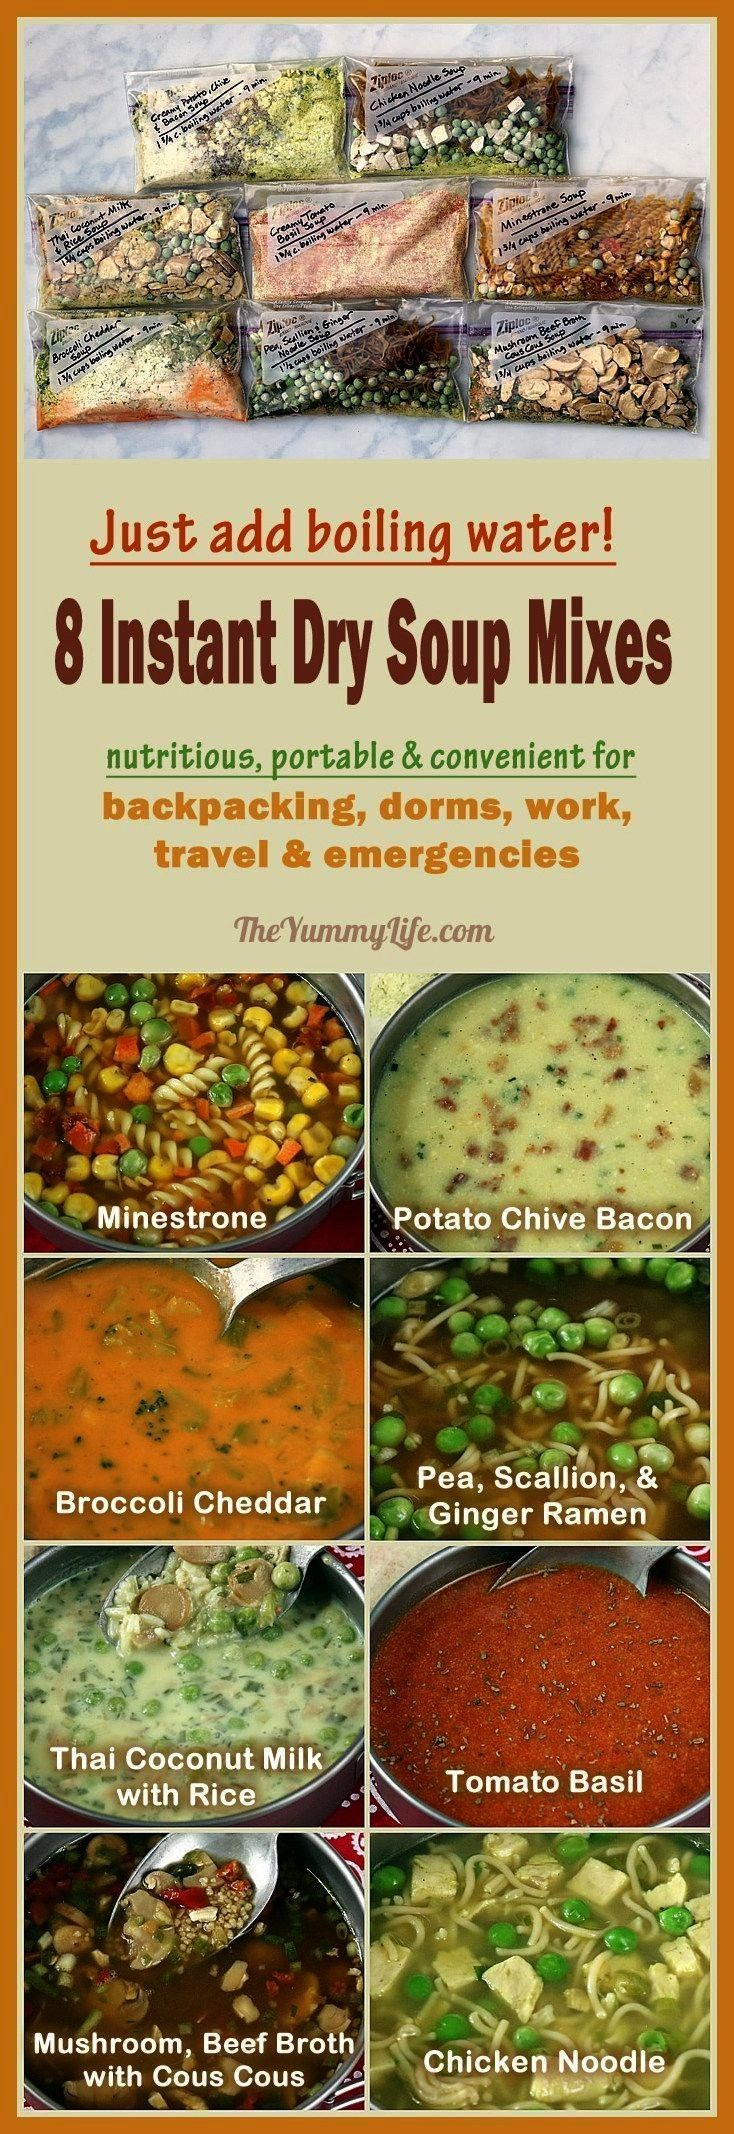 week of light and nutritious food for the backpacker - How to prepare and prepare 7 days of... A we